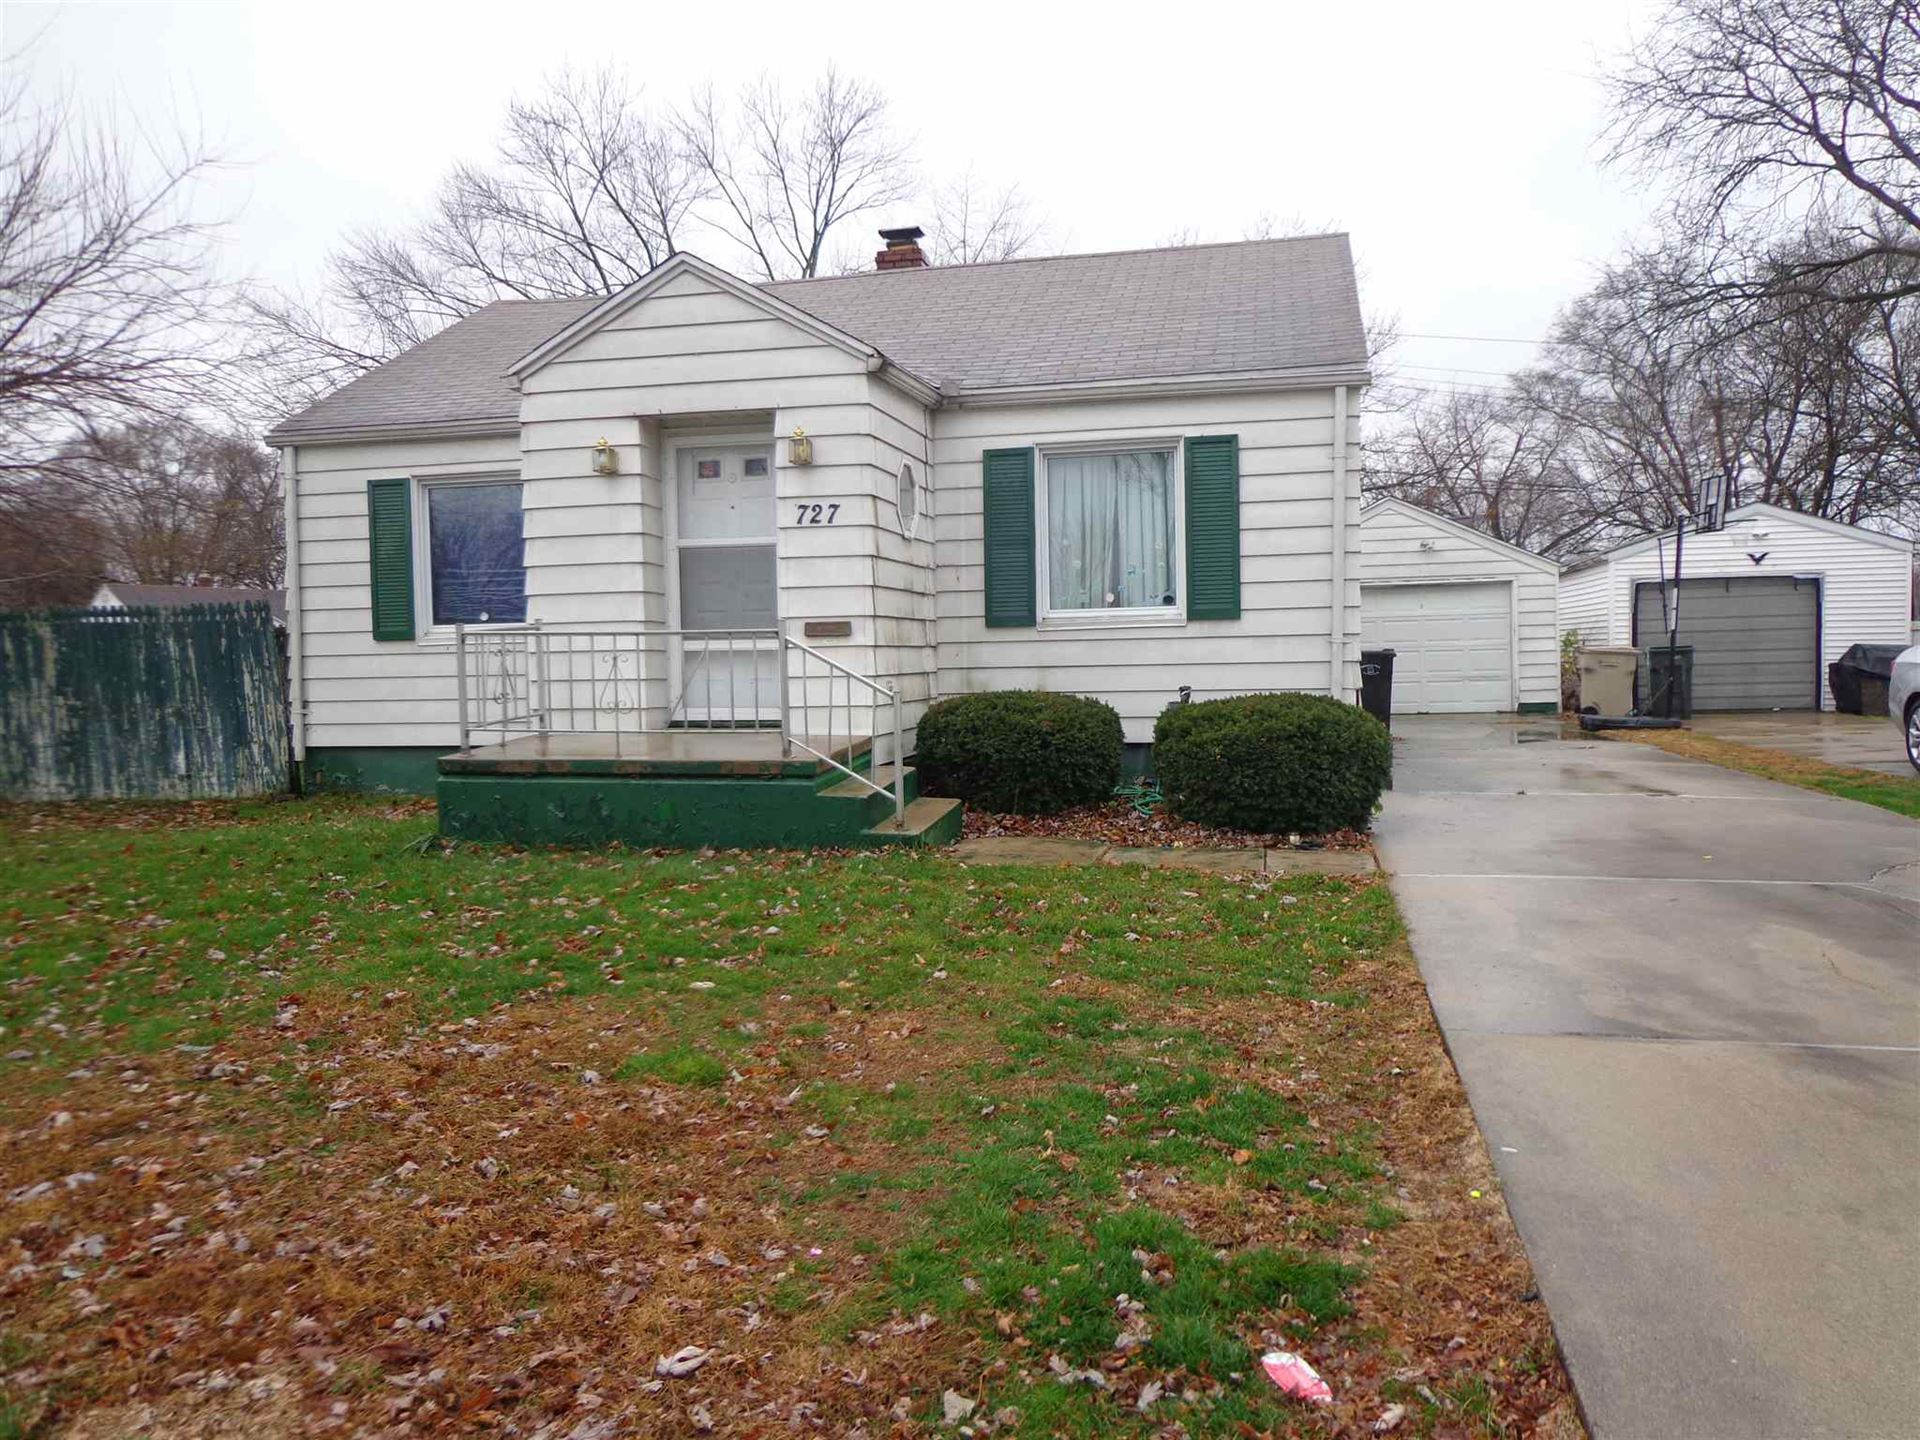 727 S Illinois Street, South Bend, IN 46619 - #: 202046775